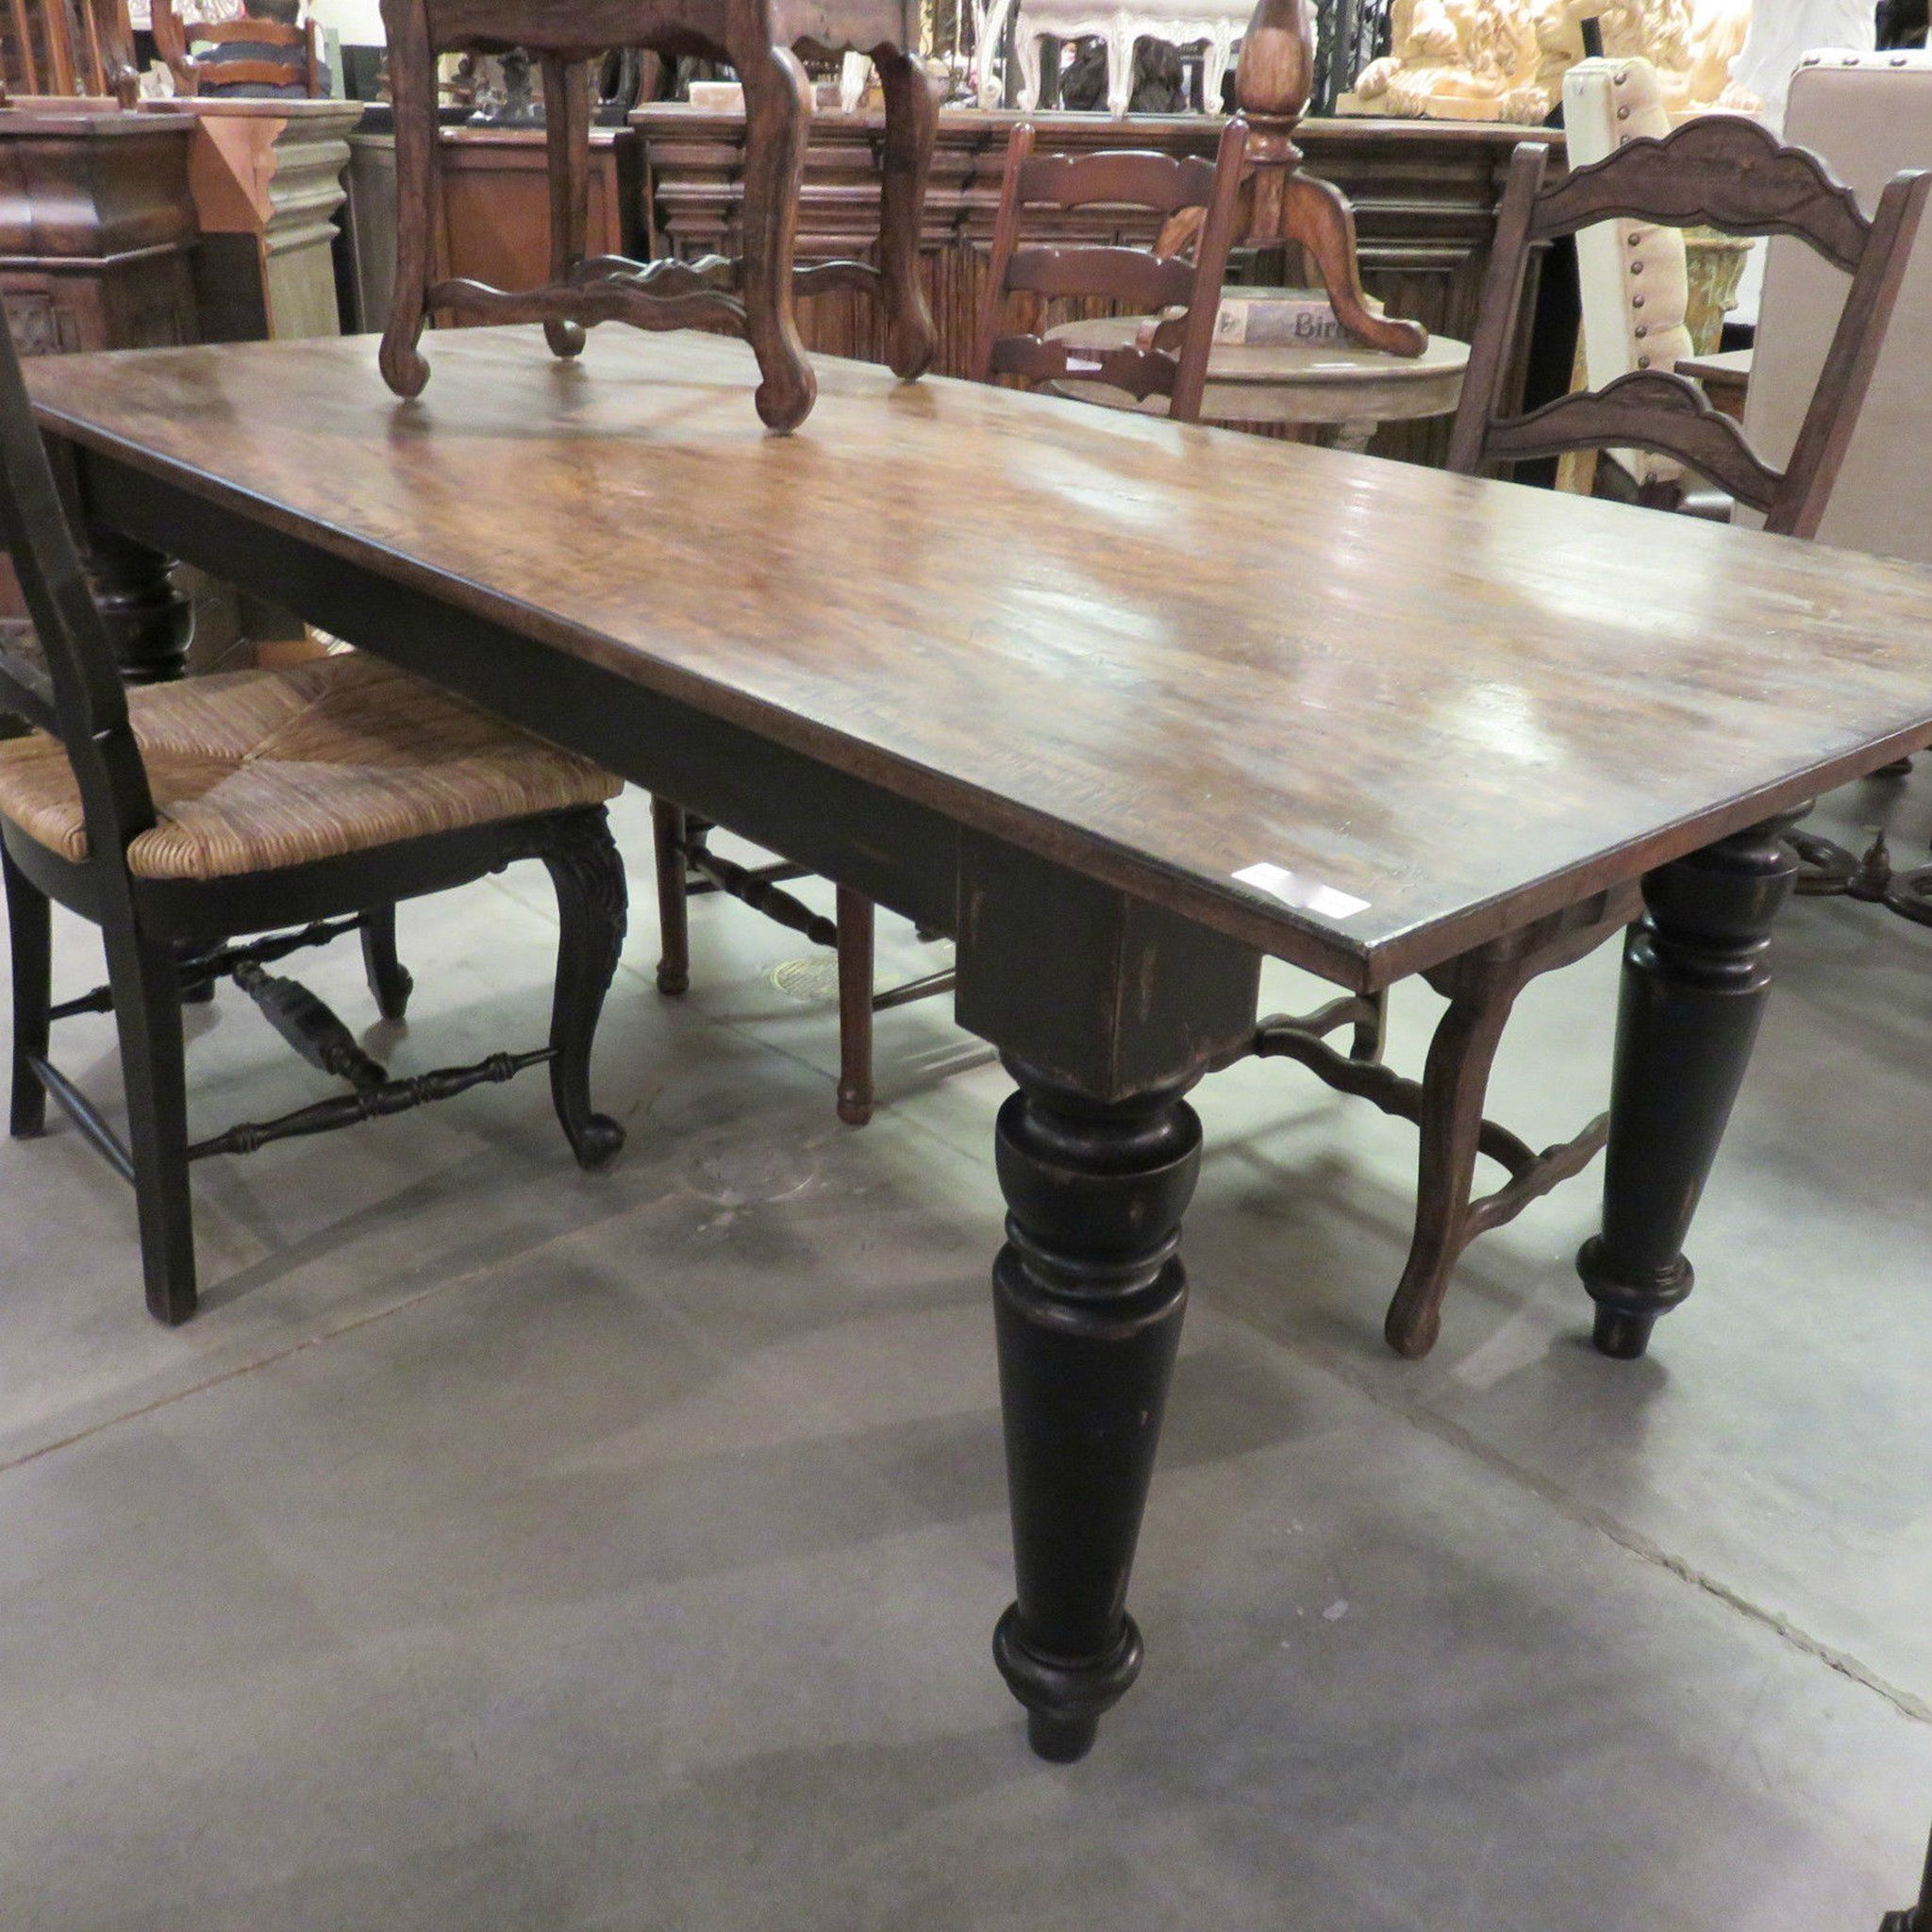 Rustic Farmhouse Dining Table 72 Black Distressed Reclaimed Wood